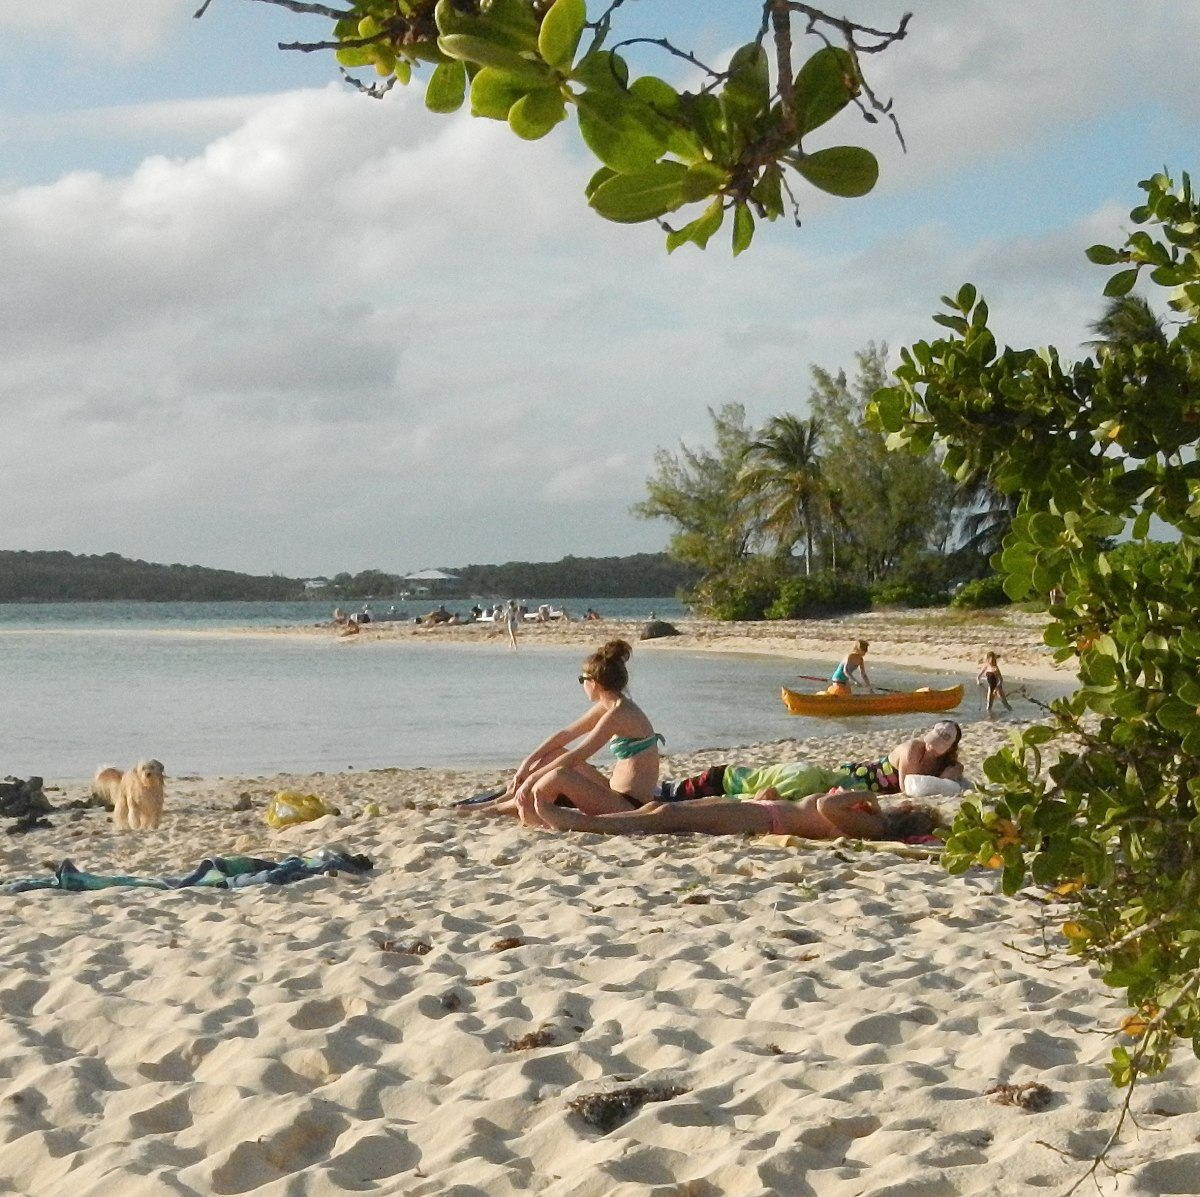 We laid in the sun, kayaked and snorkeled in the 80º water at the south end of Elbow Cay.